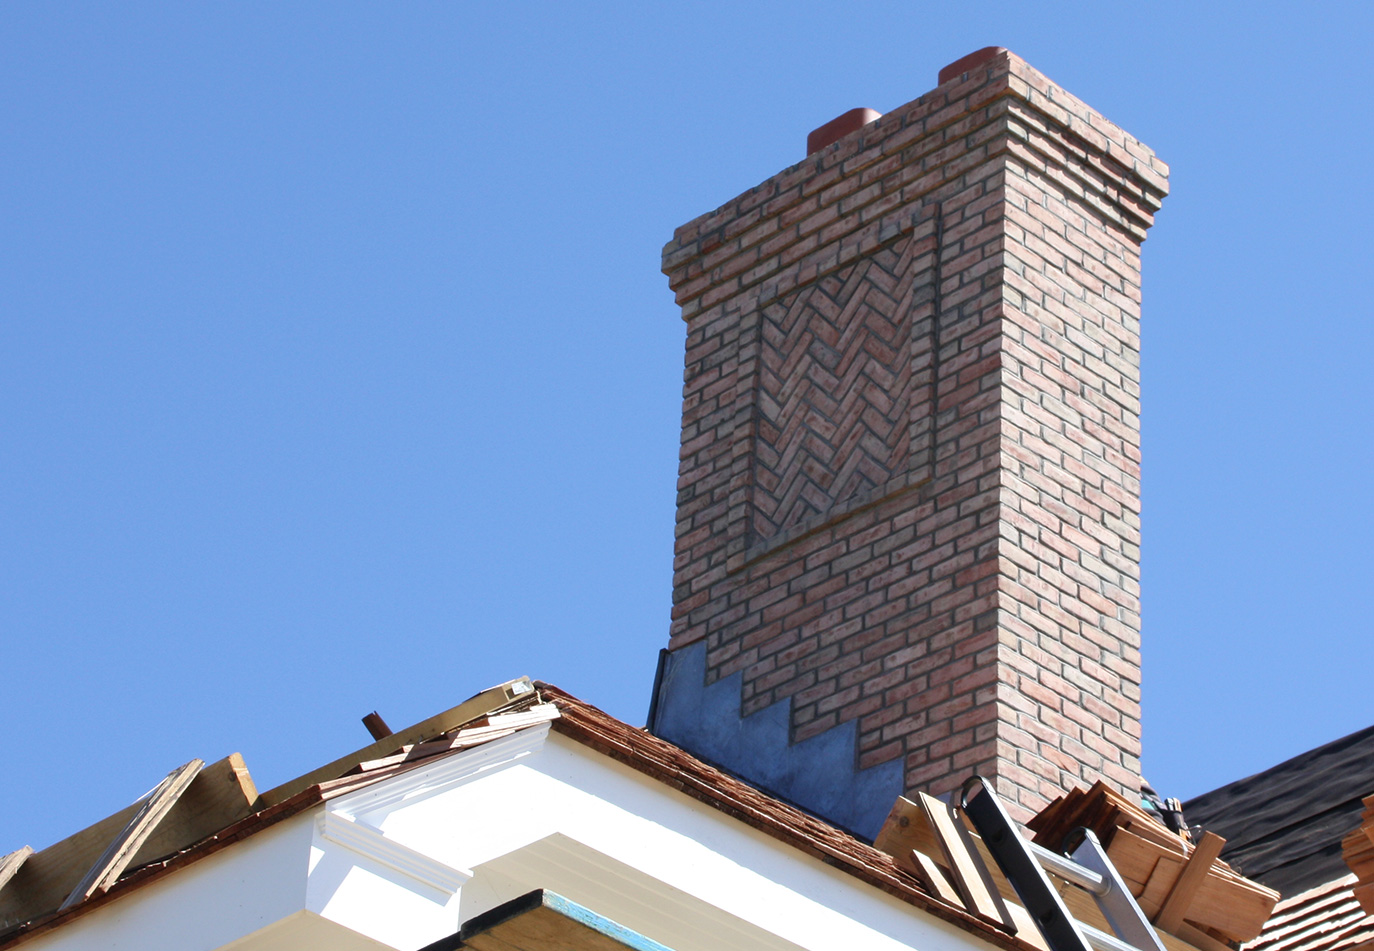 brick chimney being repaired on the roof of the house